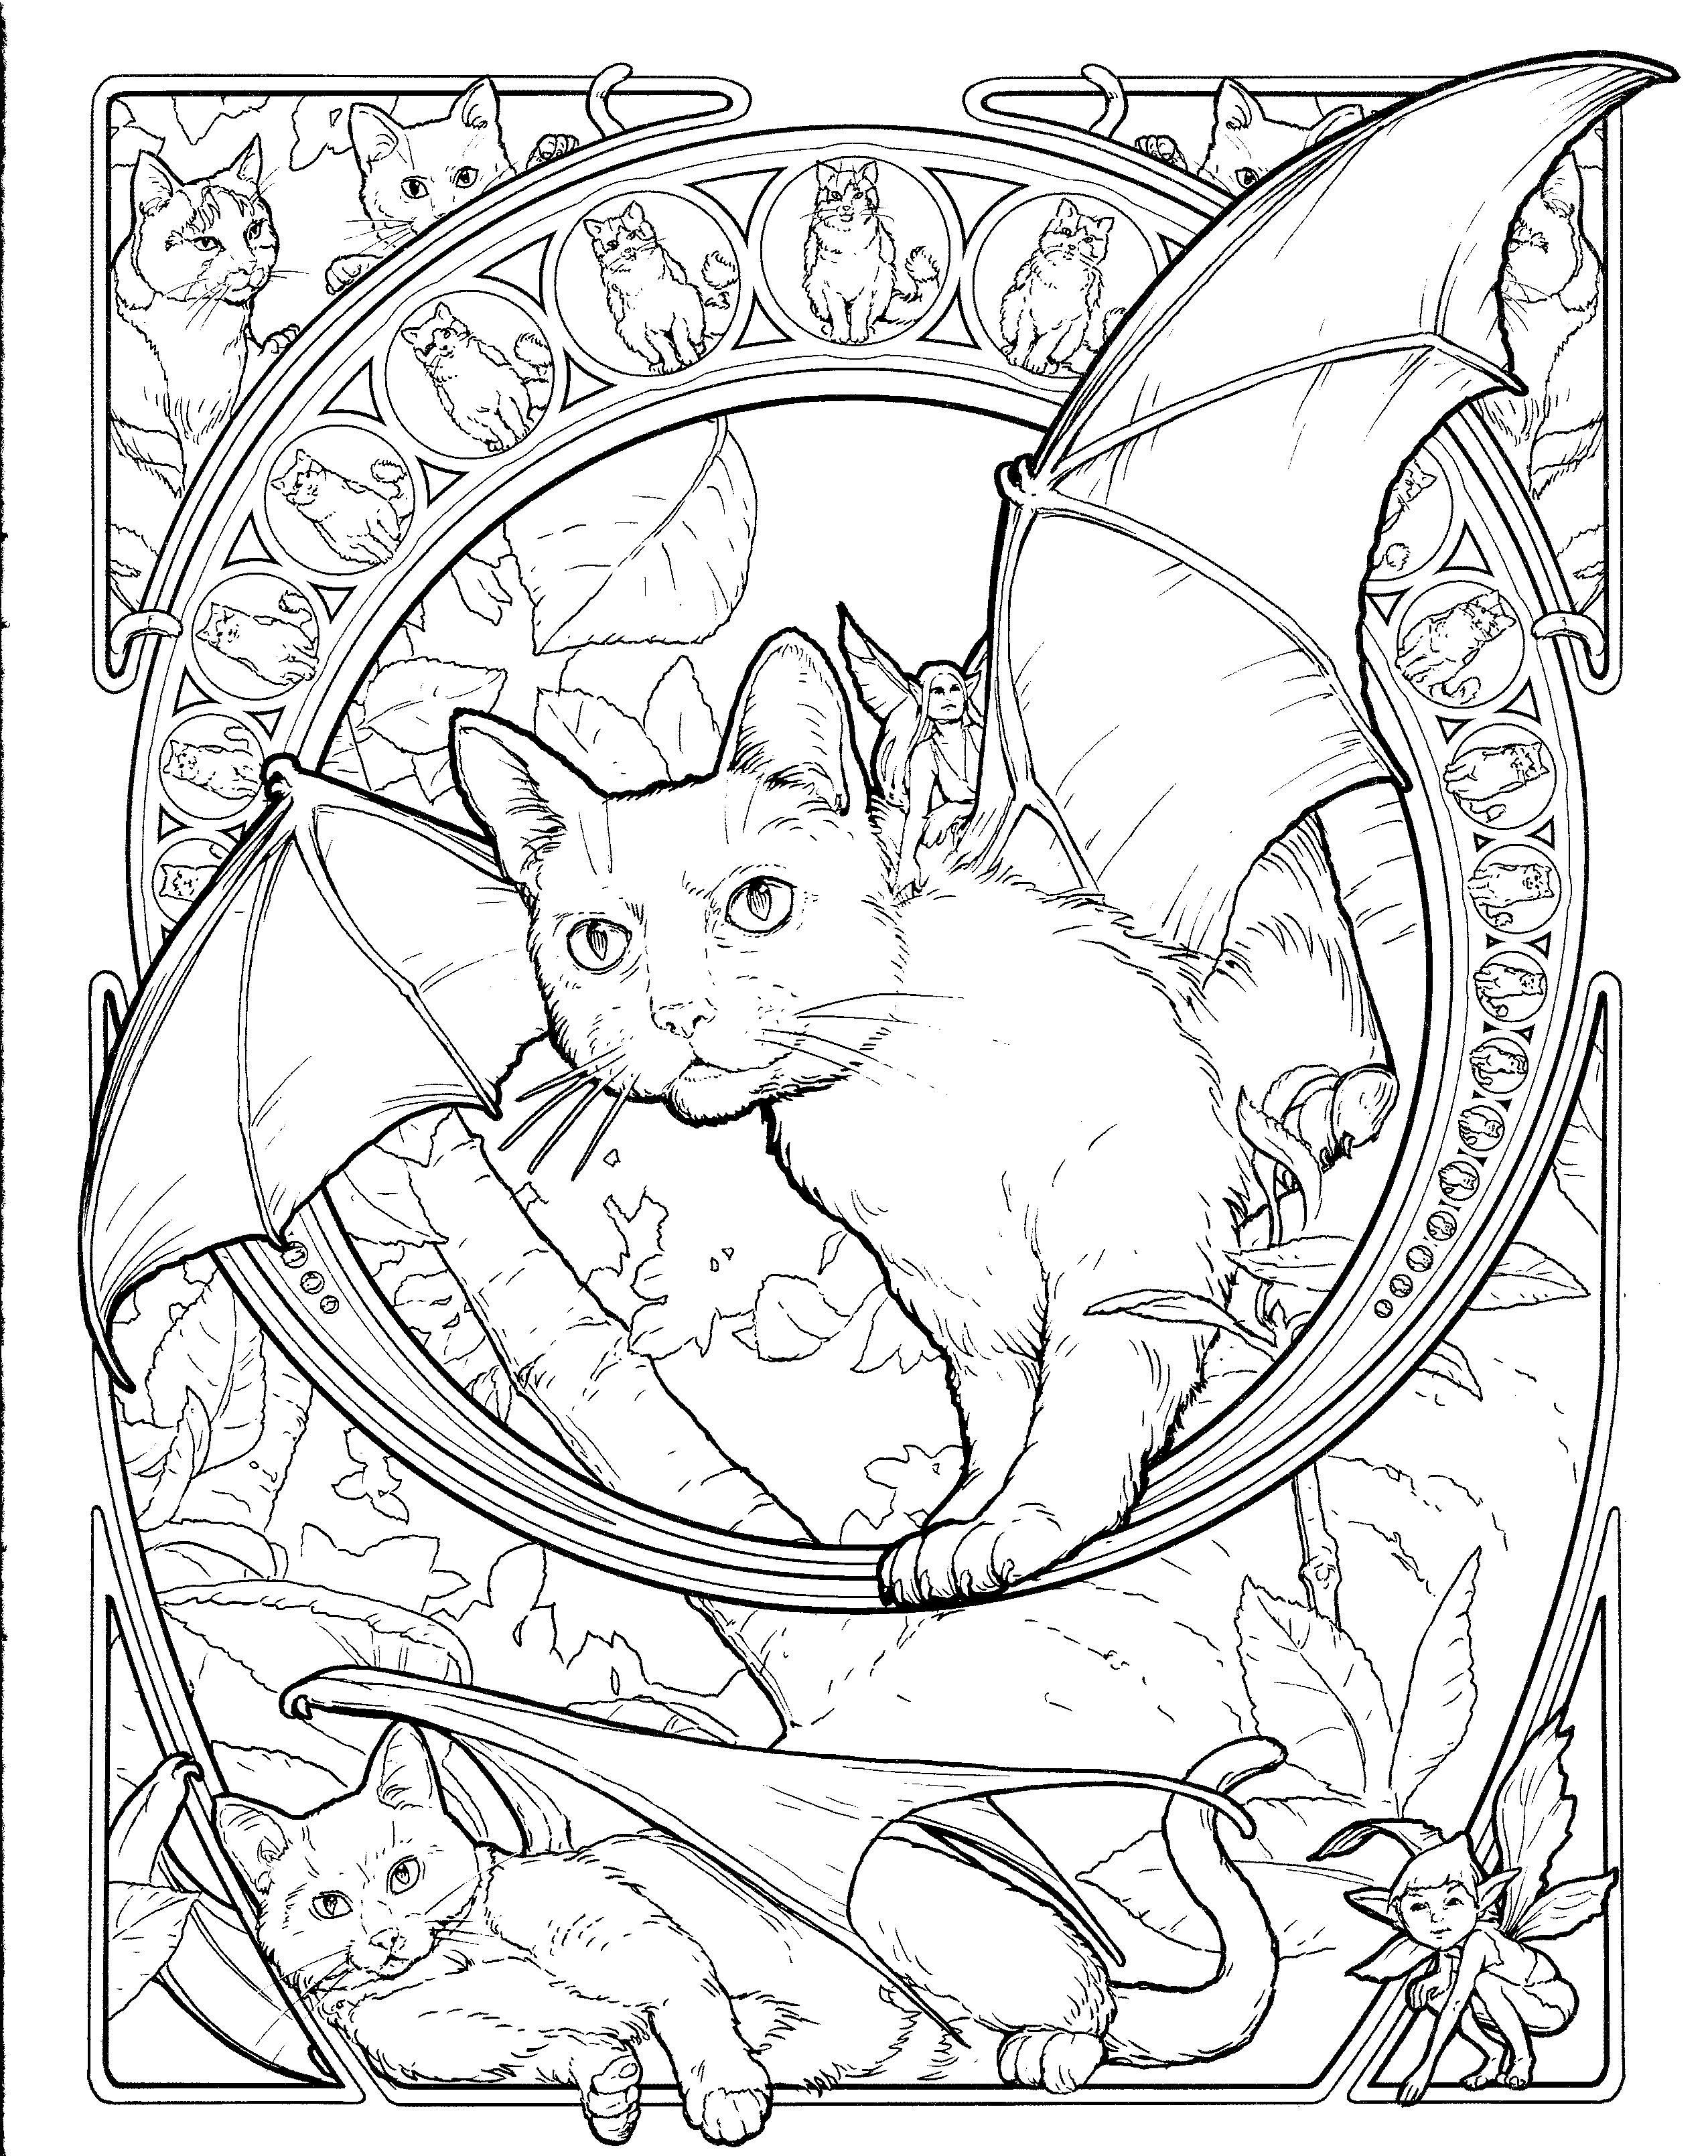 Coloring Pages Halloween Cat - Tripafethna